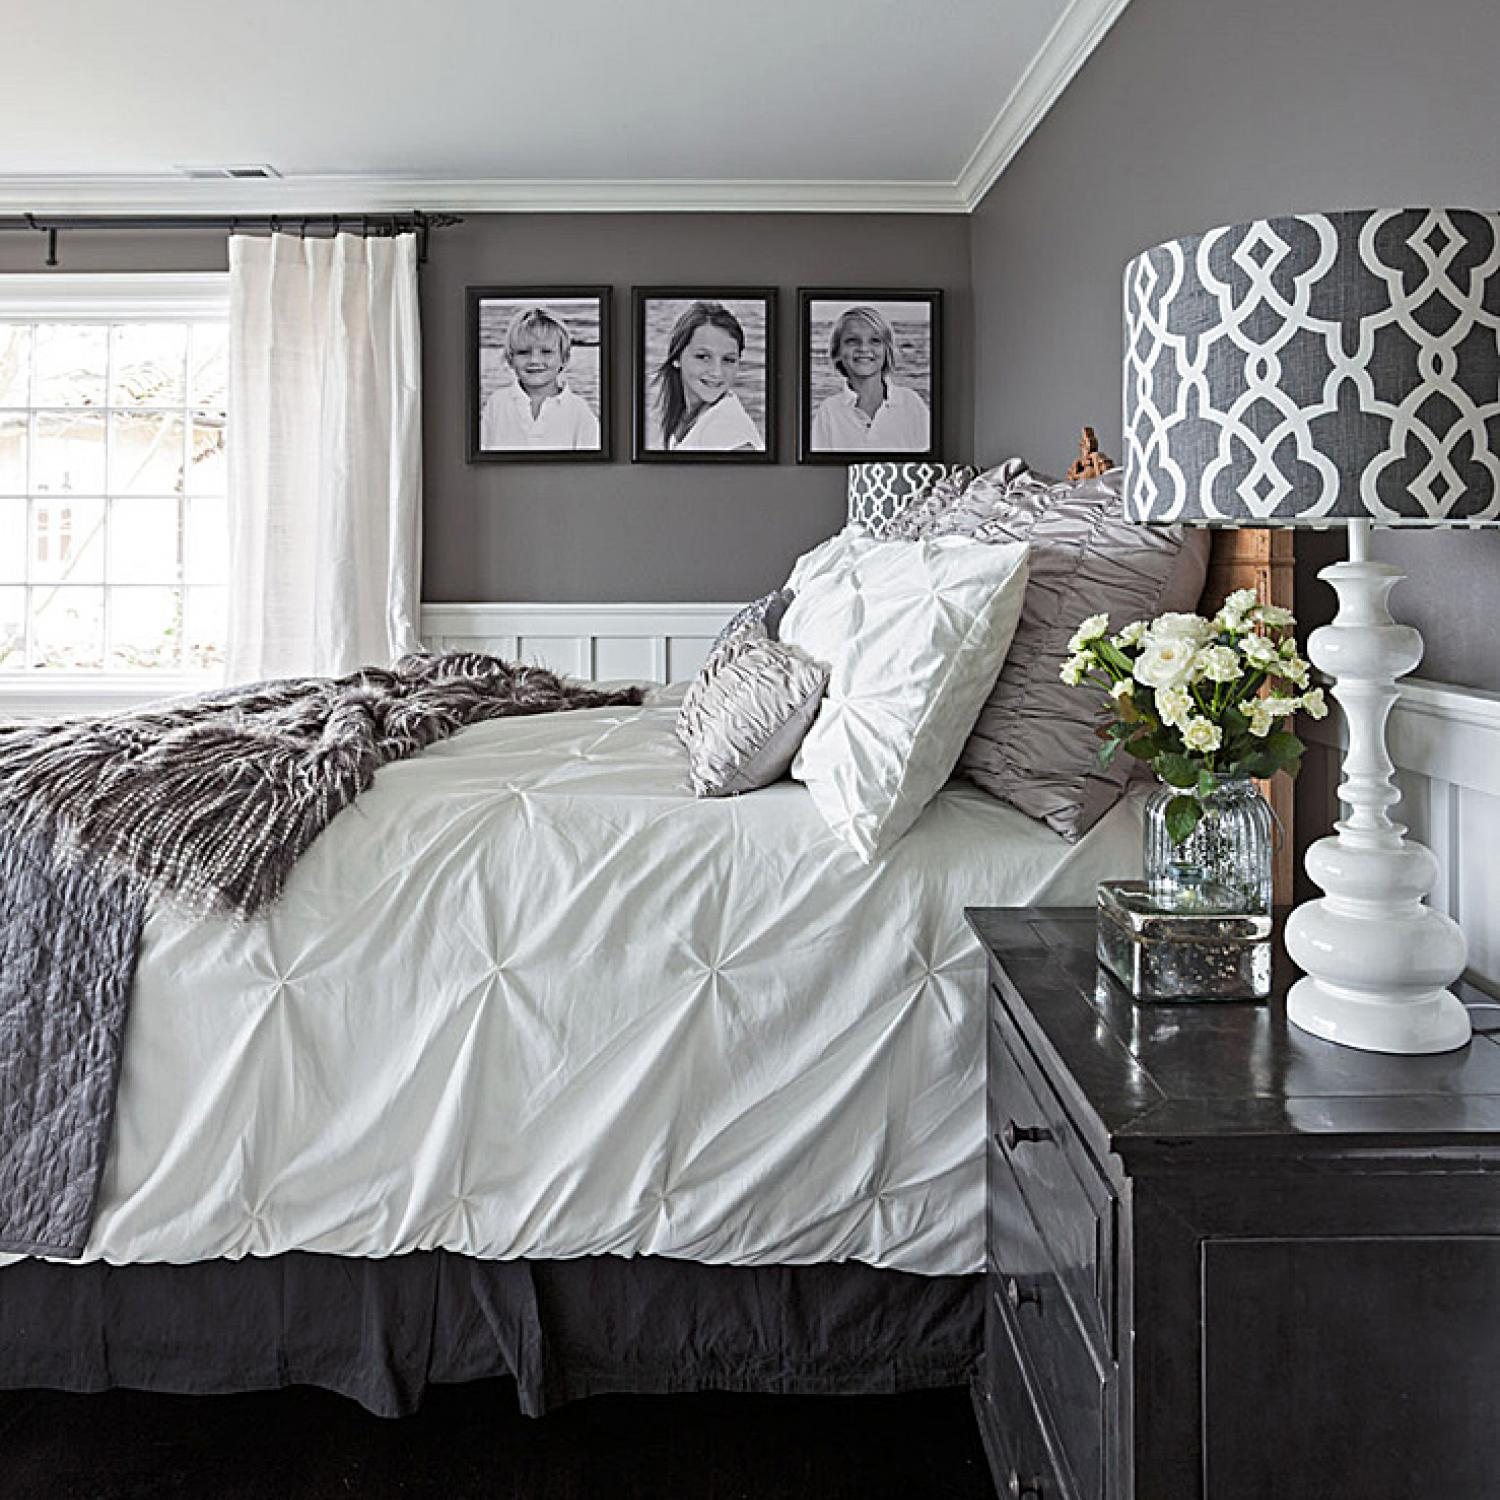 Gray Master Bedroom Design Ideas Banksy Bedroom Wall Art Bedroom Wallpaper For Teenagers Bedroom Goals Tumblr: Gorgeous Gray-and-White Bedrooms